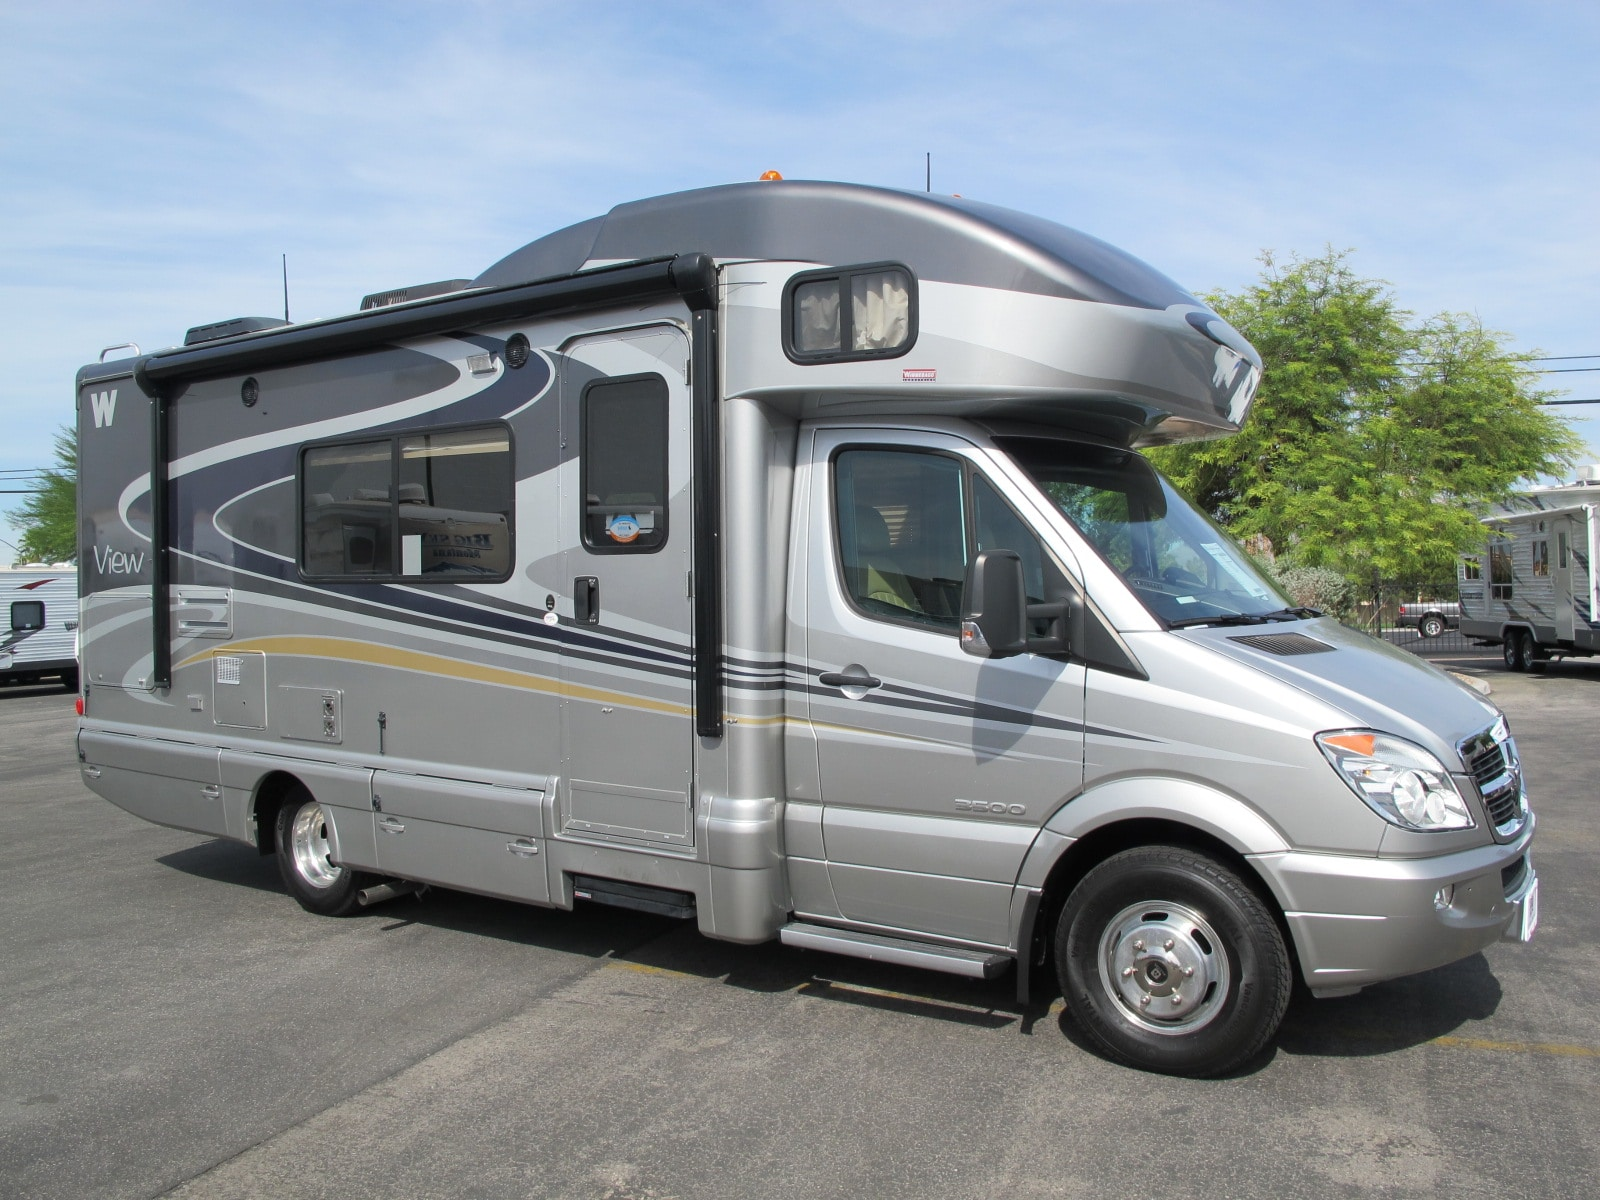 New They Looked At The Different Classifications Of Vehicles, Including Class A, B And C Motorhomes, Along With Travel Trailers, Fifthwheel Trailers, Folding Camping Trailers And Truck Campers A Class A Motor Home Averages 13,00030,000 Pounds